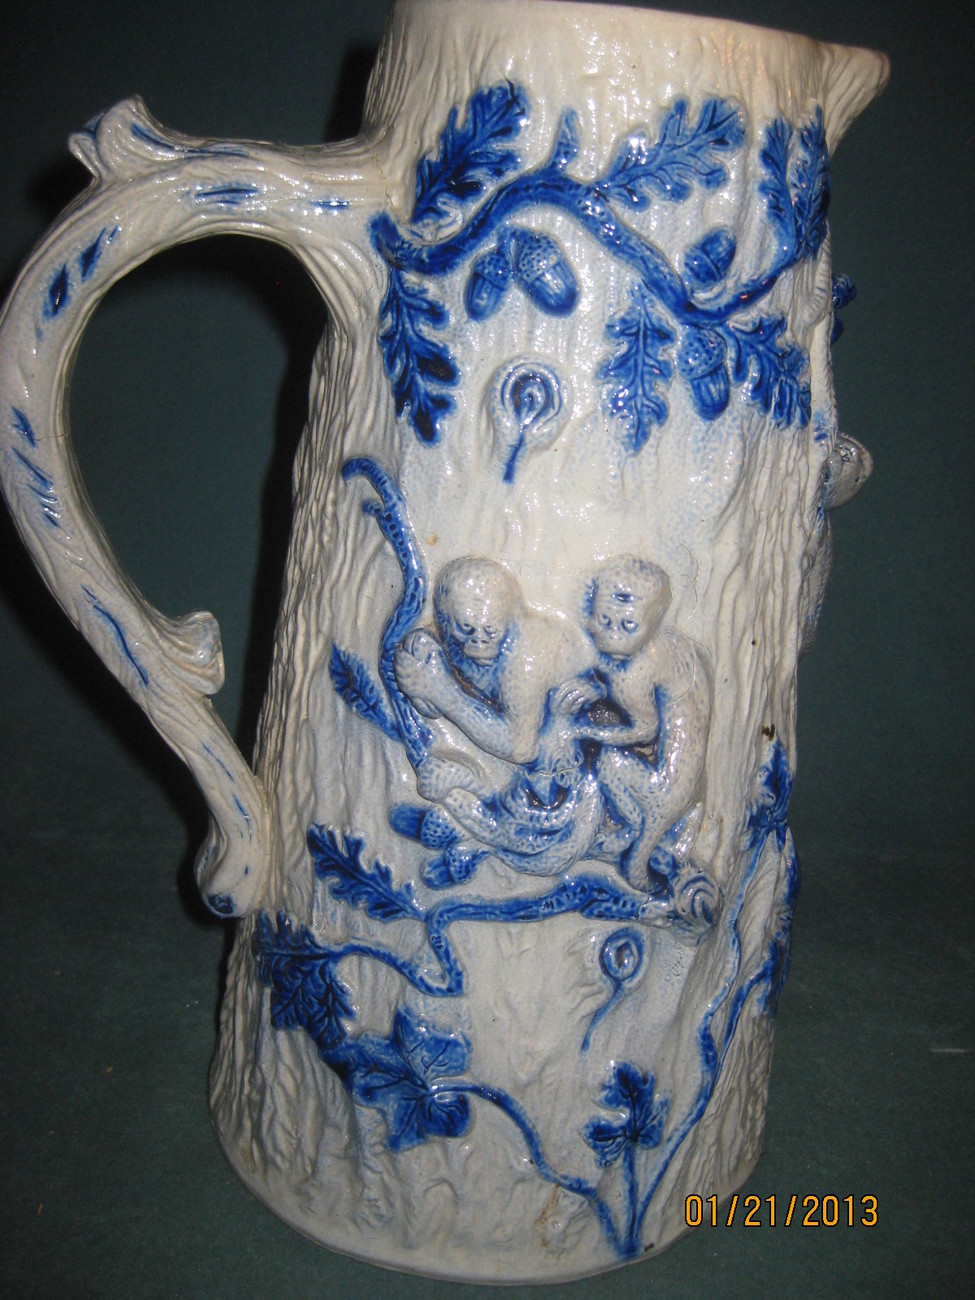 Antique Villeroy & Boch tall Picher with monkies,palm trees, and oak leaves